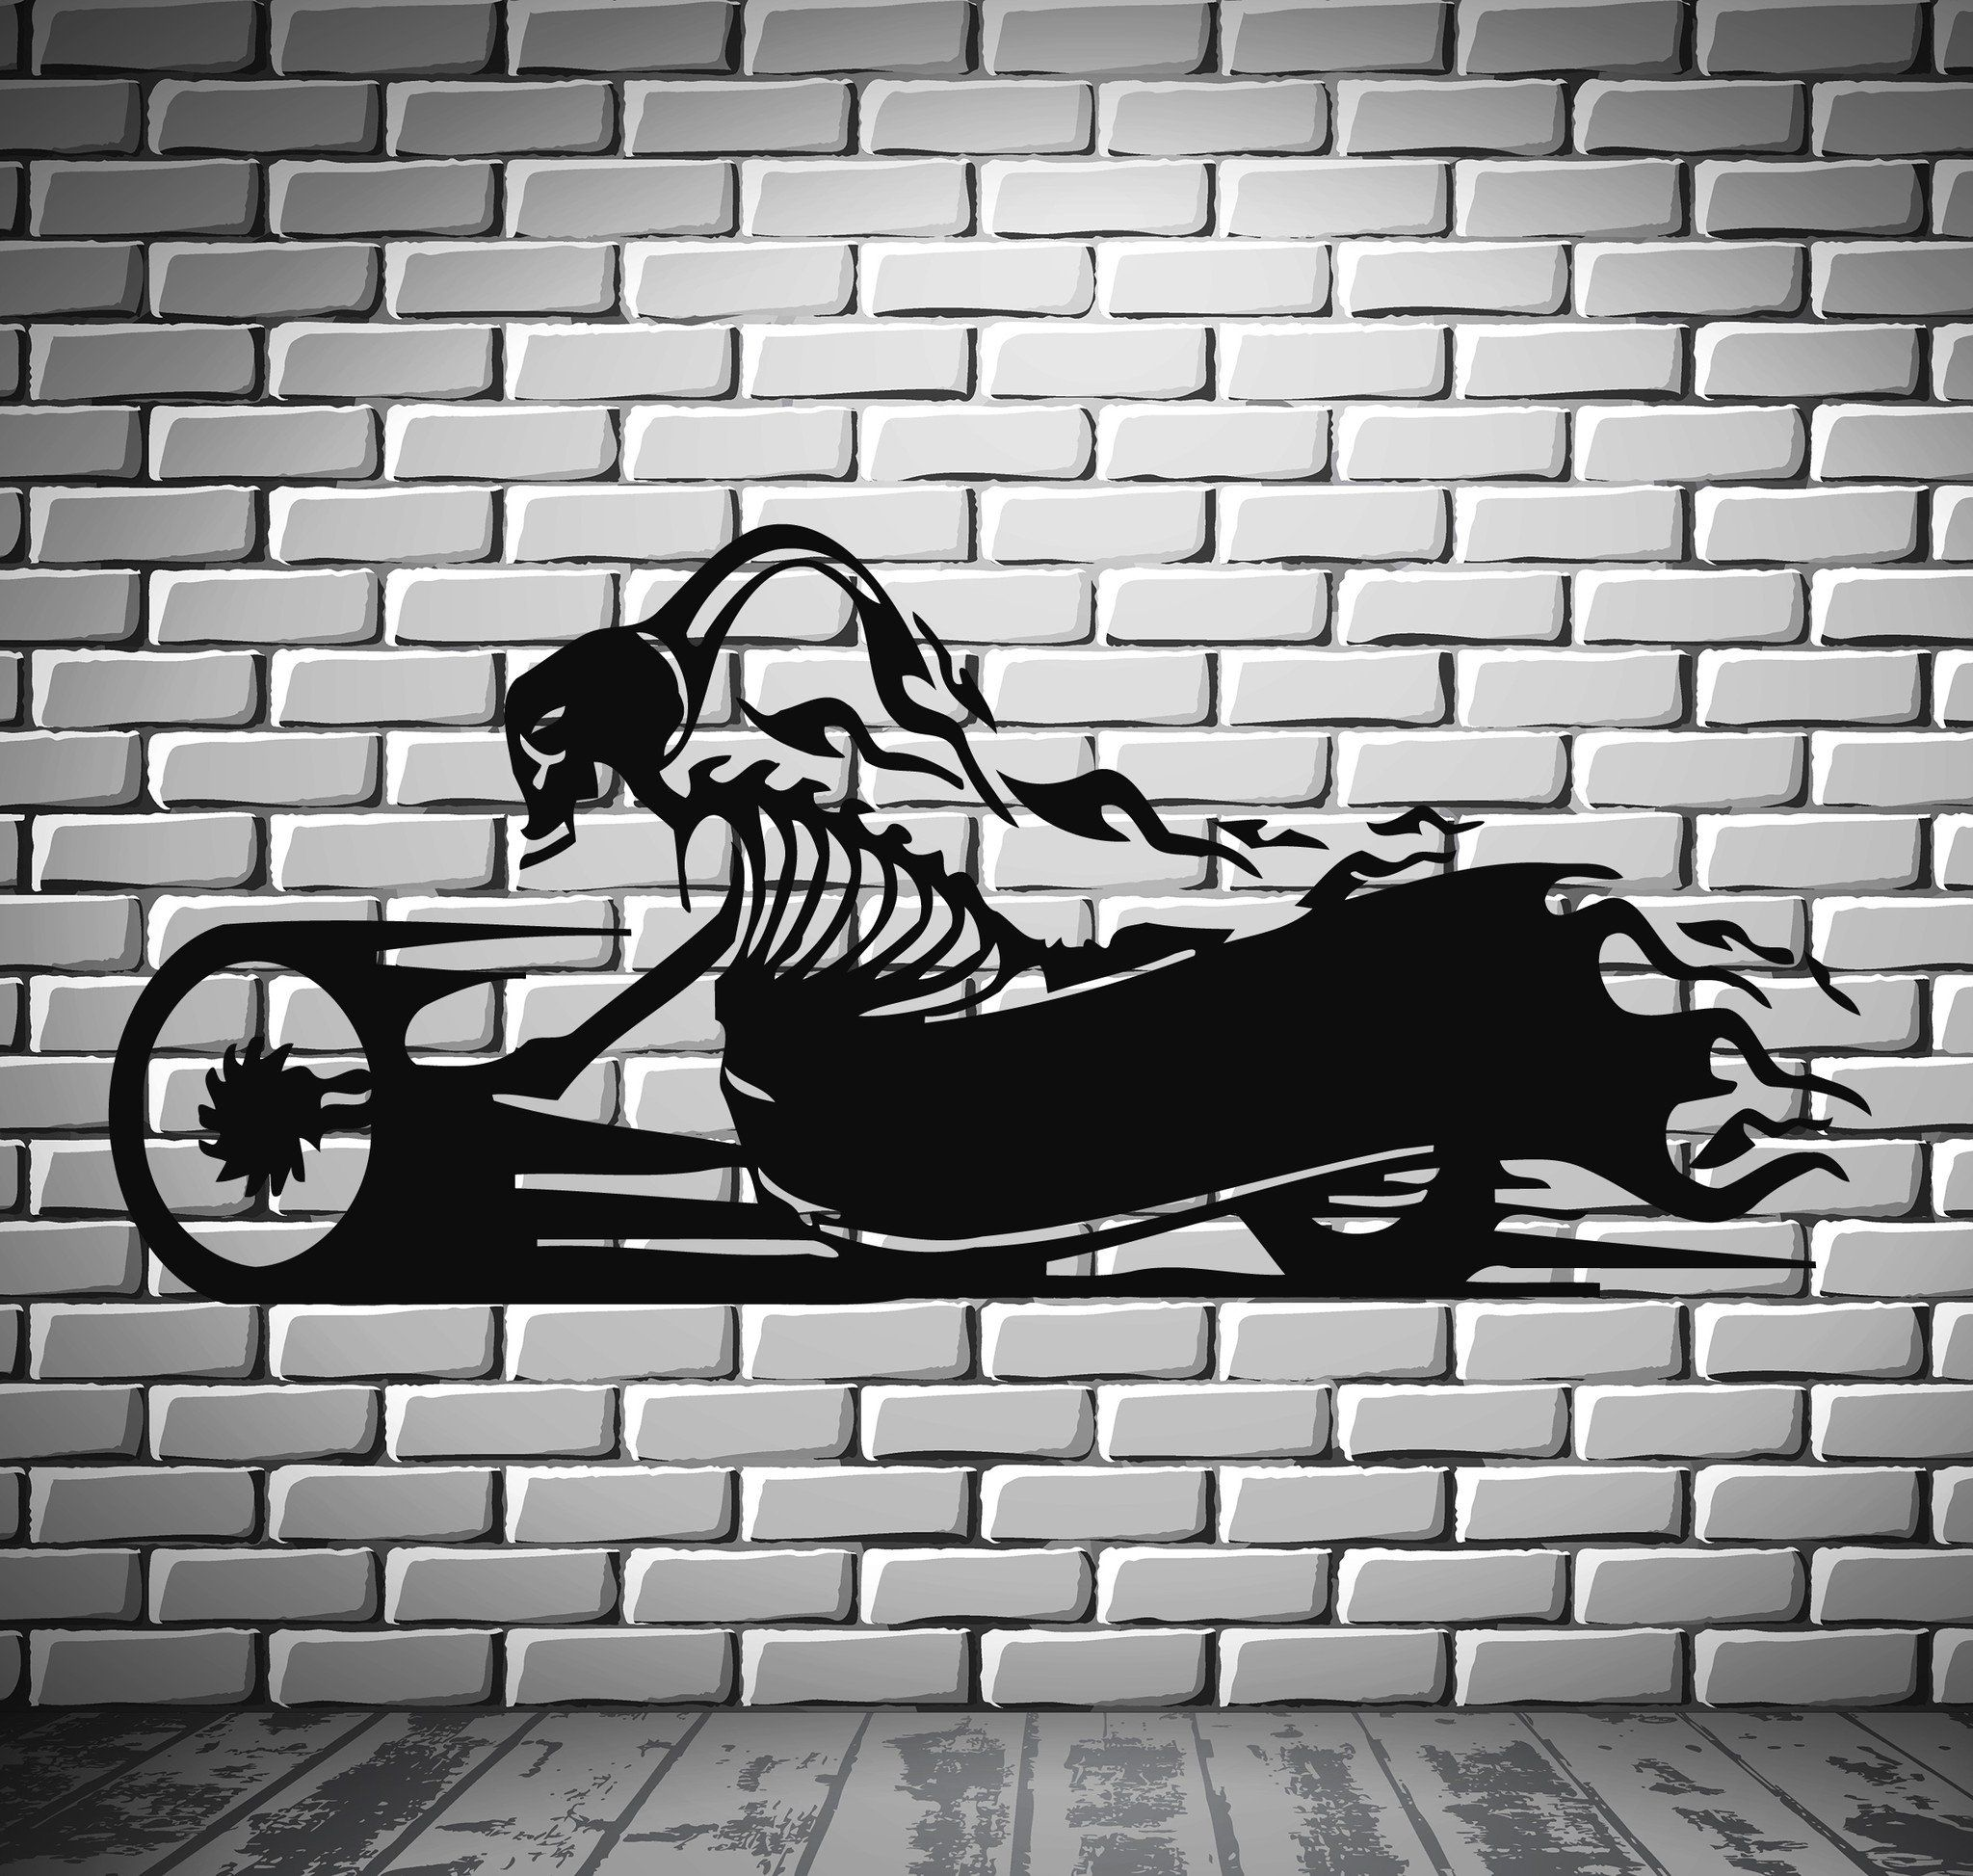 Devil Bike Scull Death Scary Sport Decor Wall Mural Vinyl